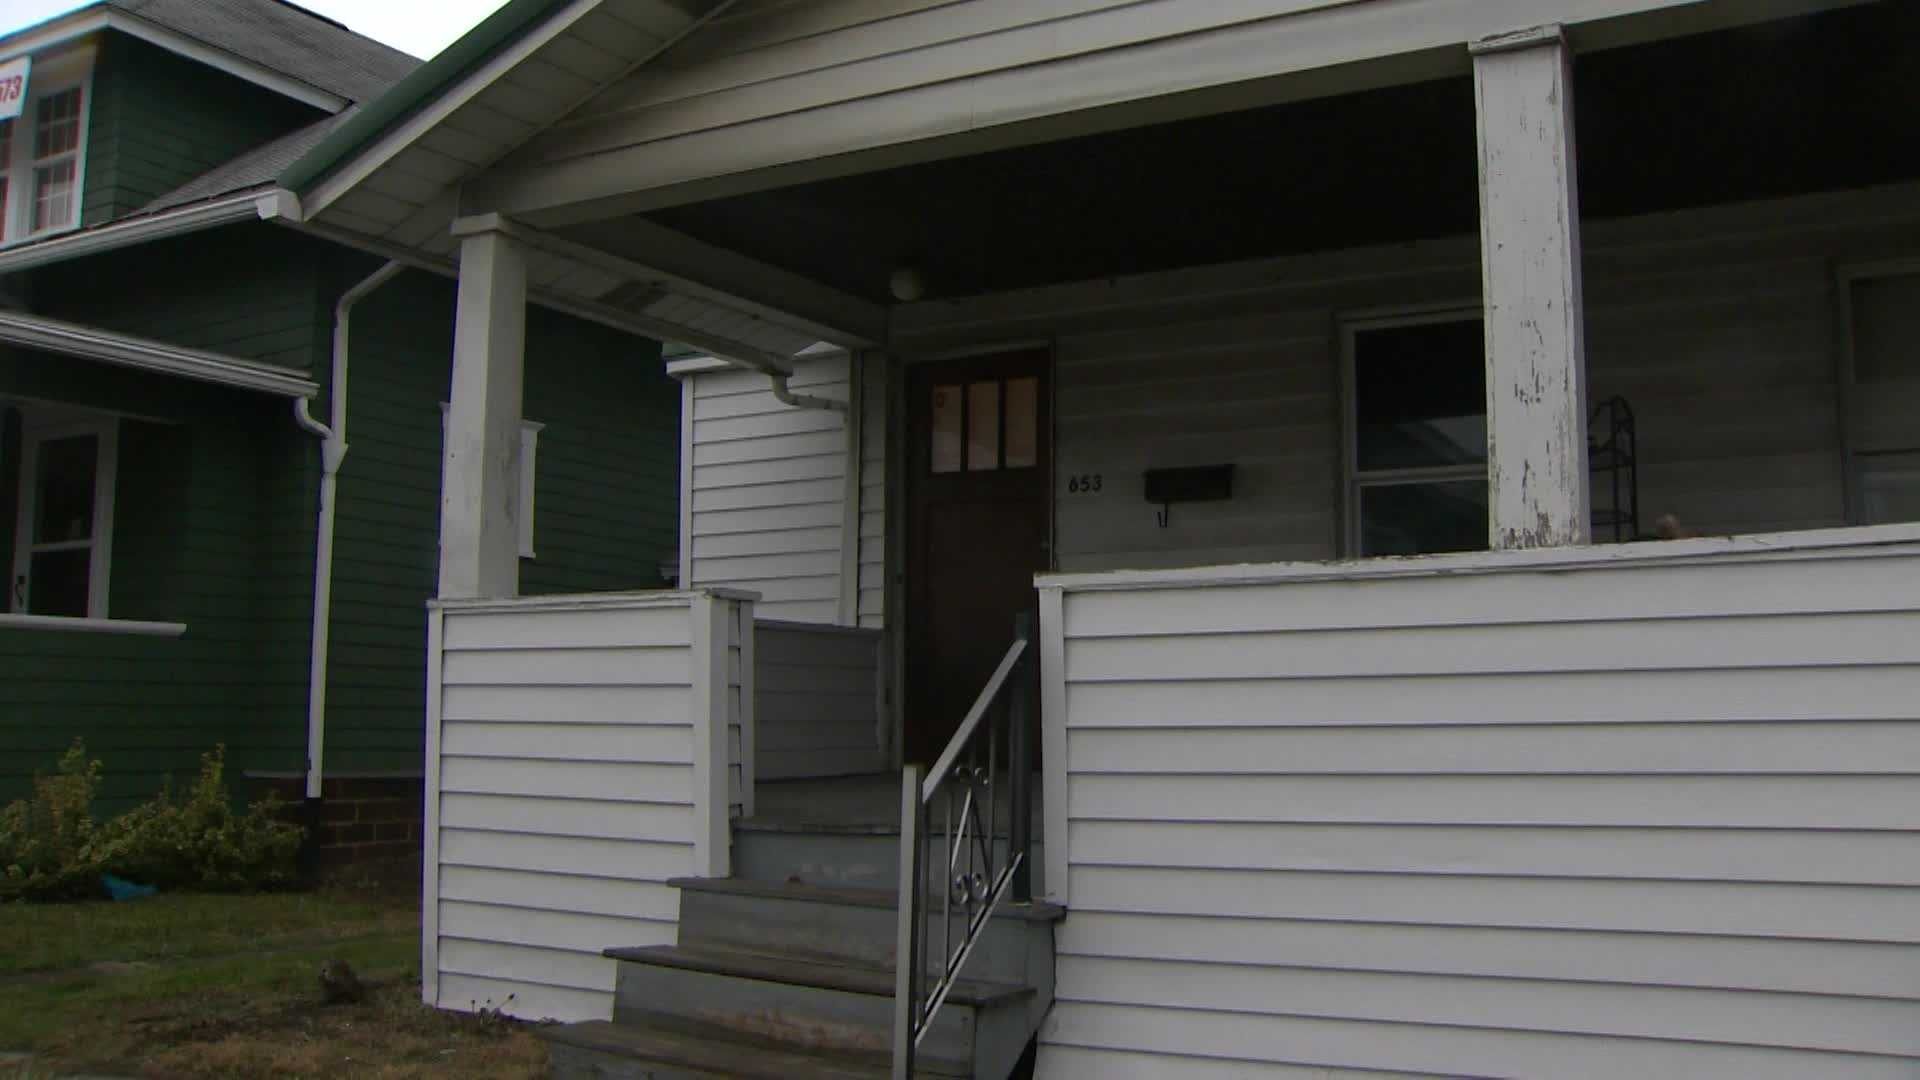 Two IUP students were victims of a home invasion when two gunmen broke into their off-campus home on Locust Street.